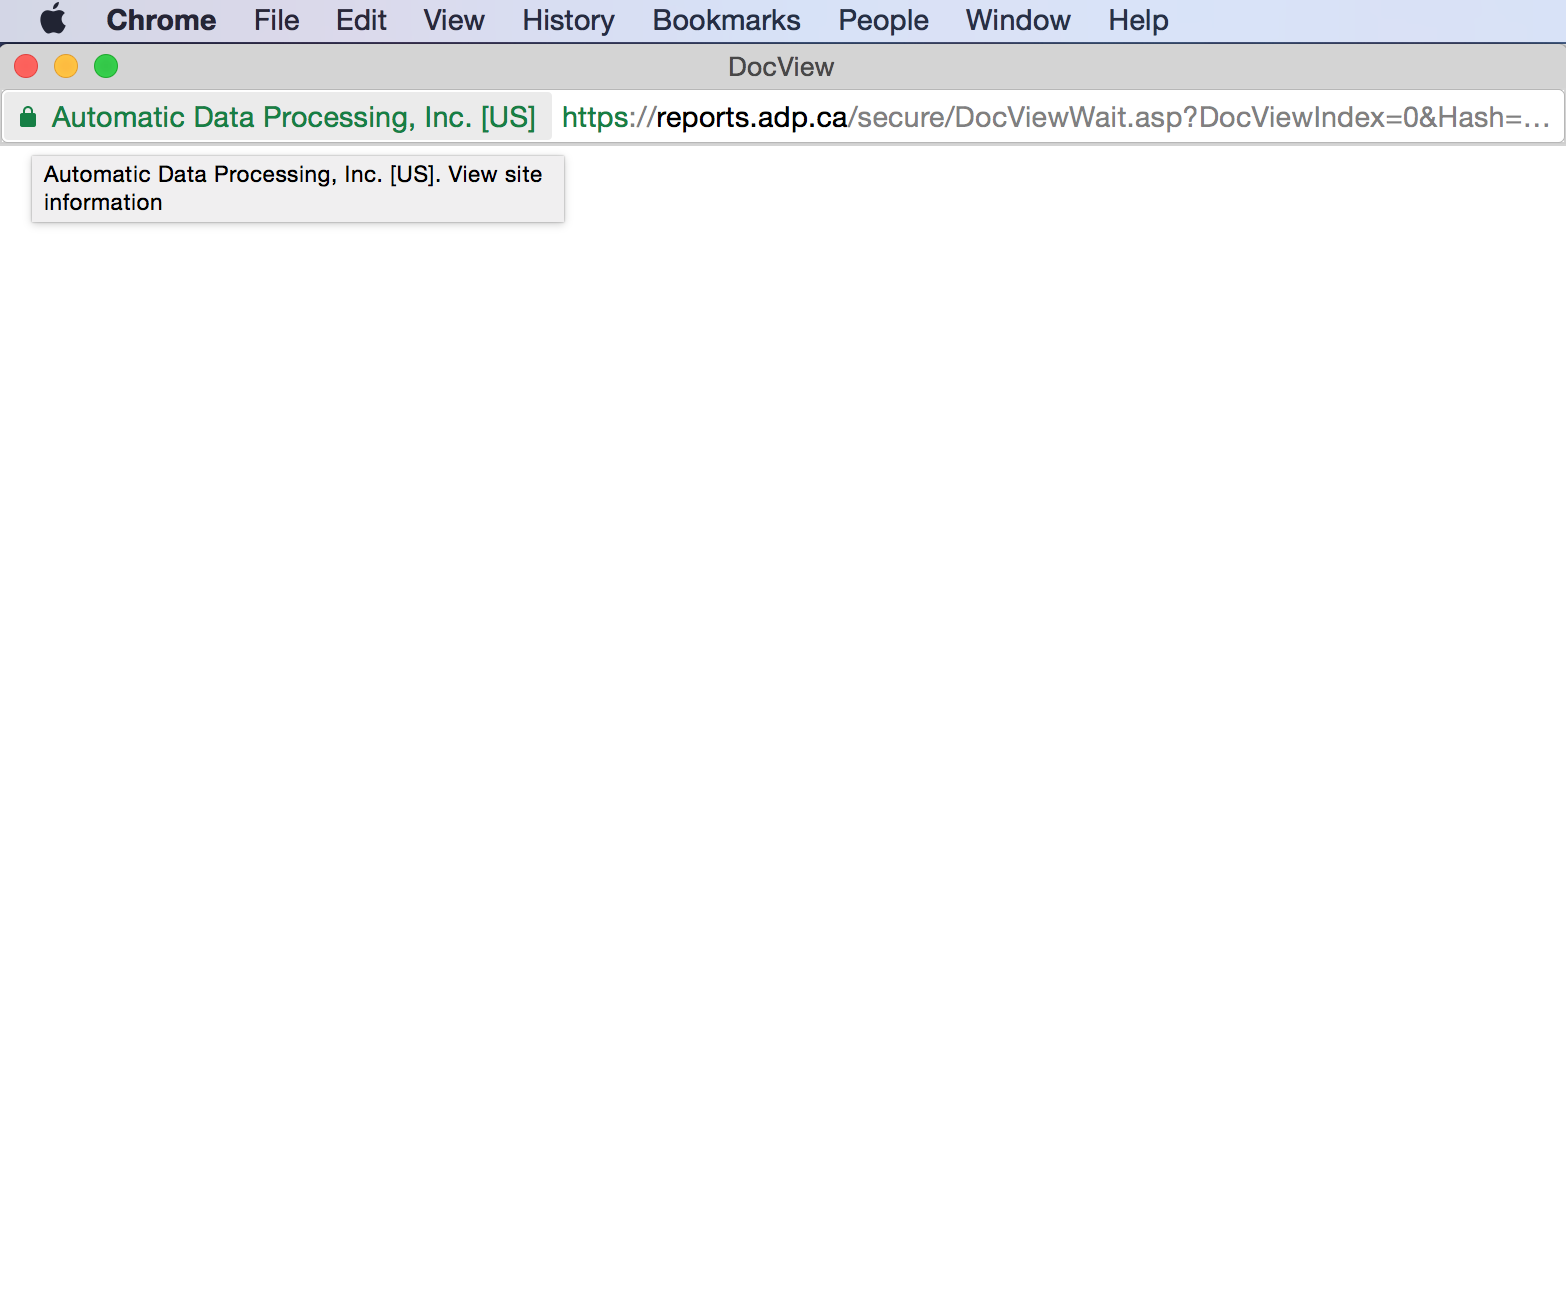 DocView pages are showing up blank in Chrome, but not Internet